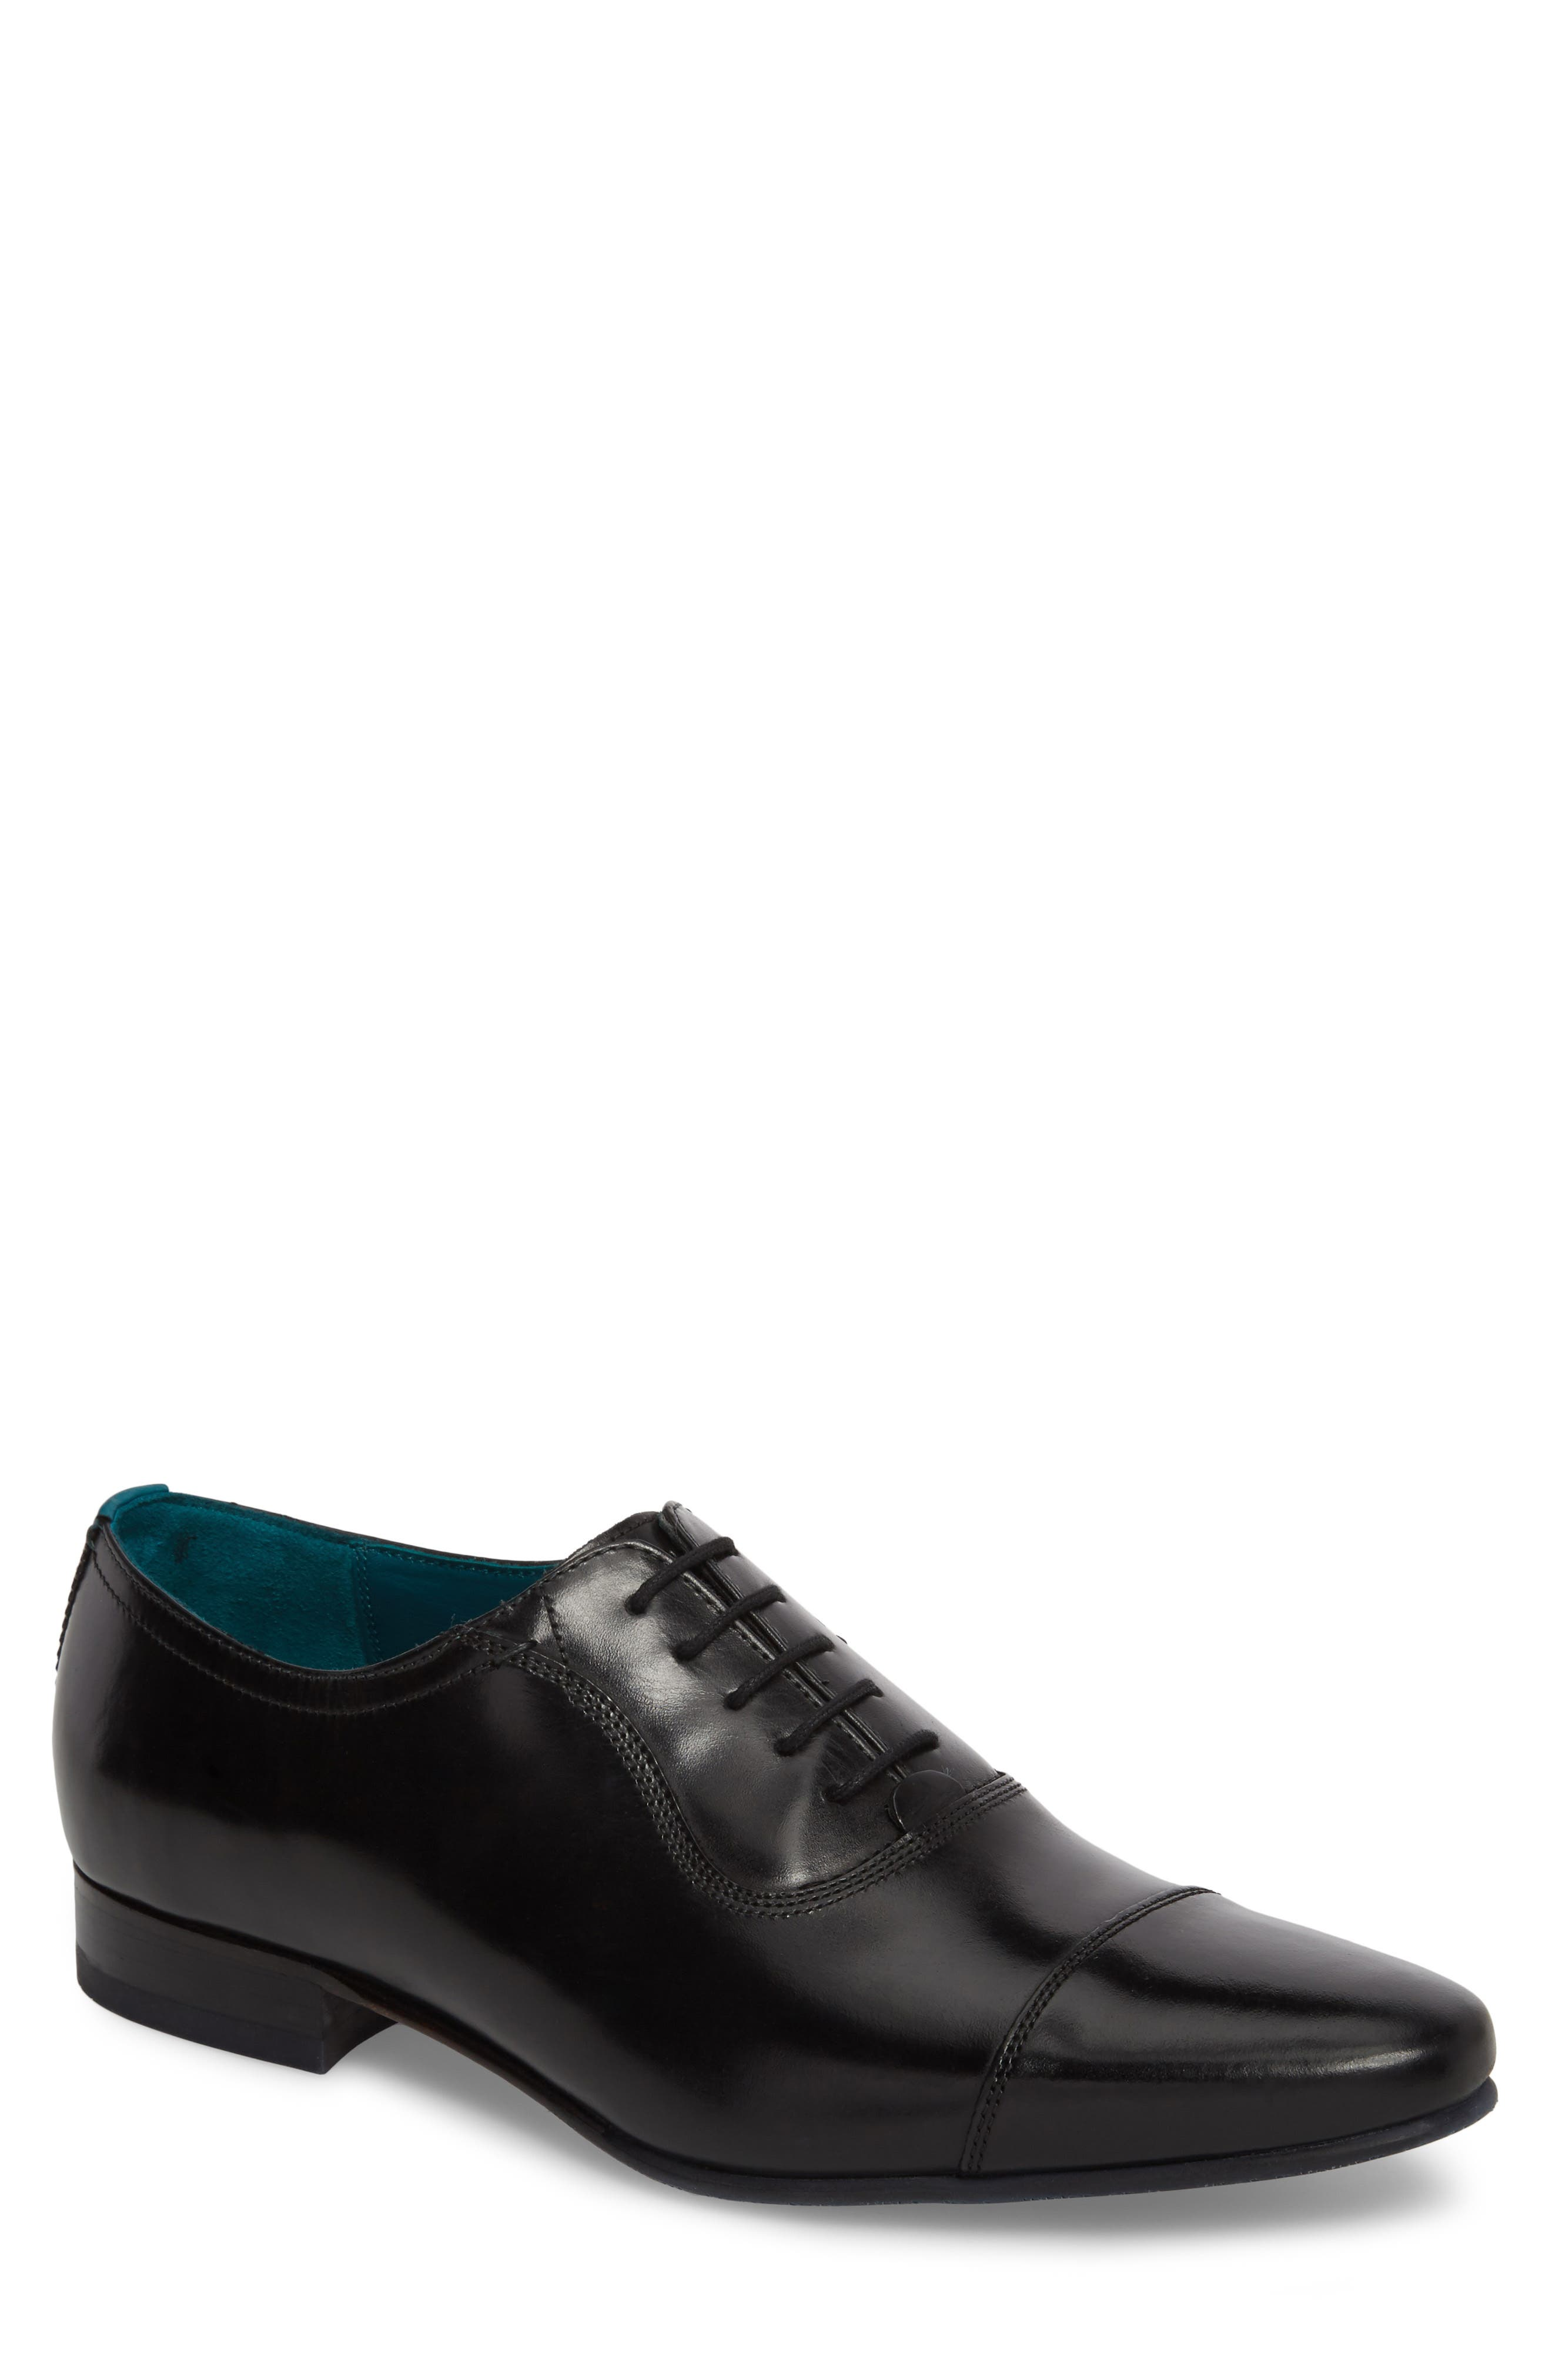 Karney Cap Toe Oxford,                             Main thumbnail 1, color,                             BLACK LEATHER